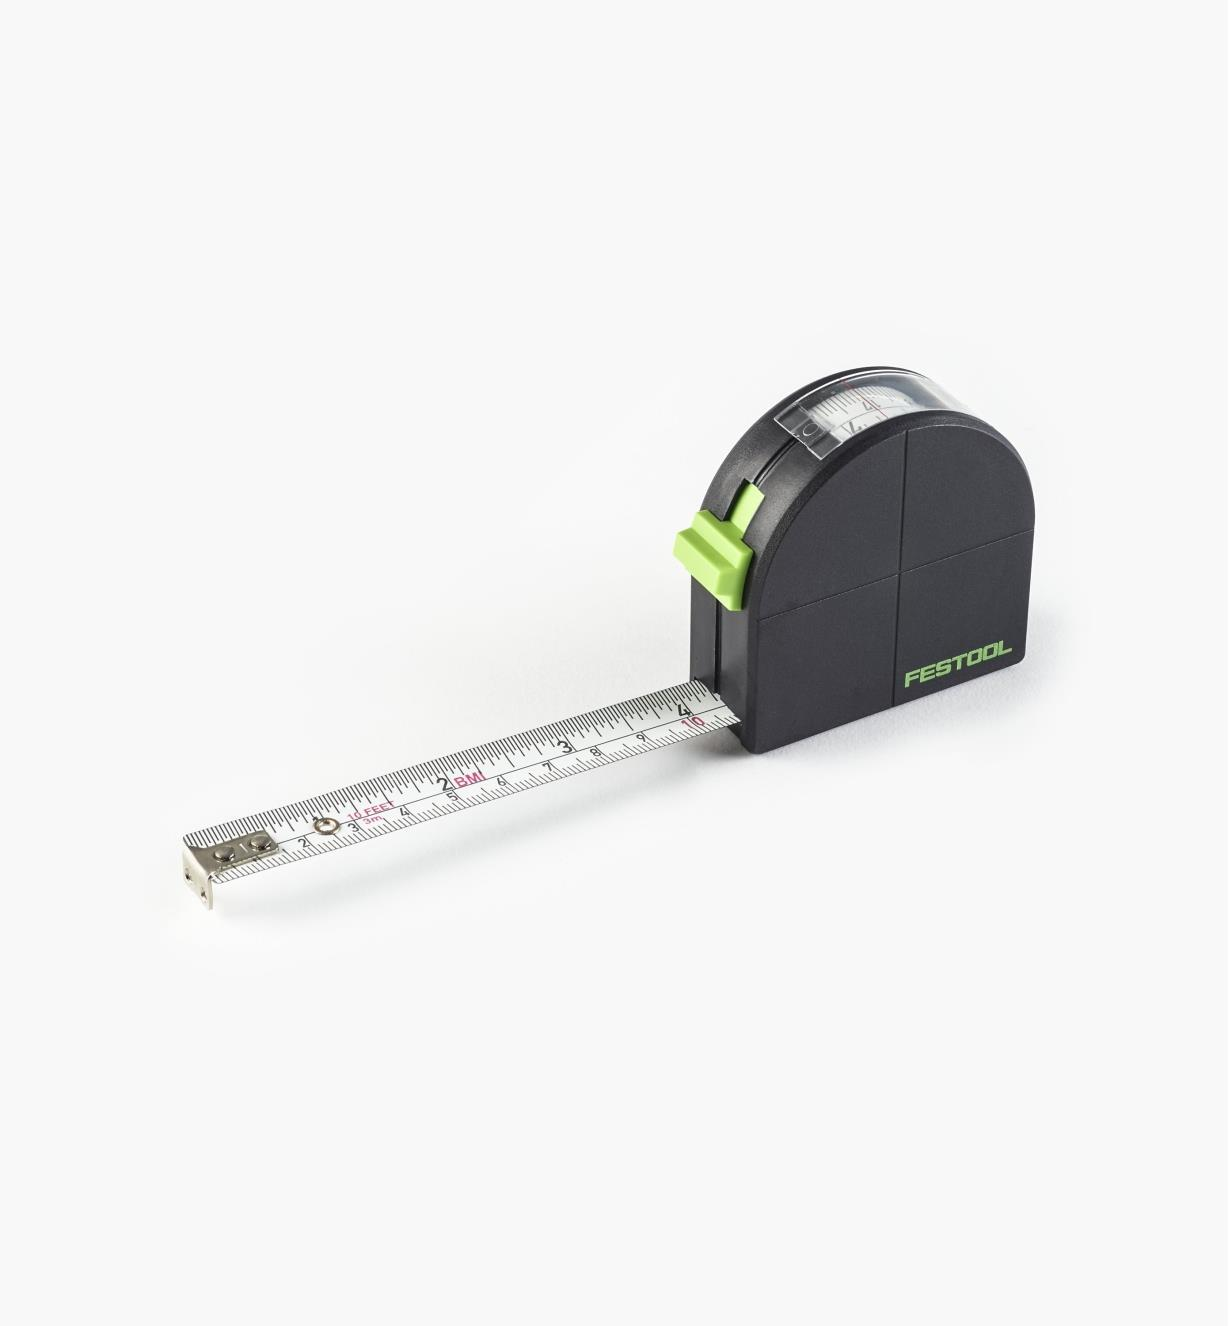 ZA495415 - Festool Tape Measure, Metric/Imperial